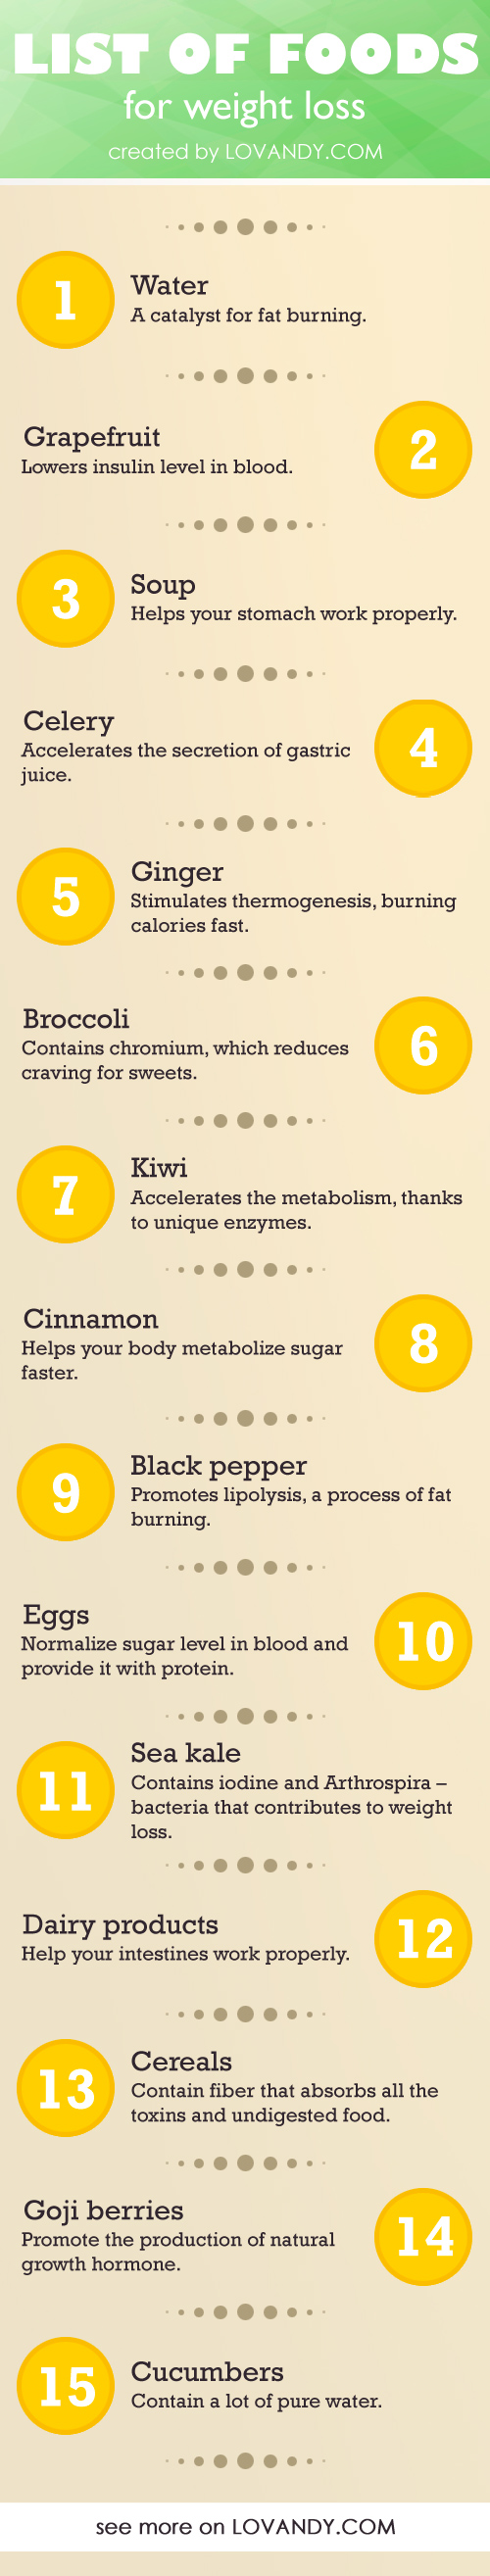 best products that help lose weight